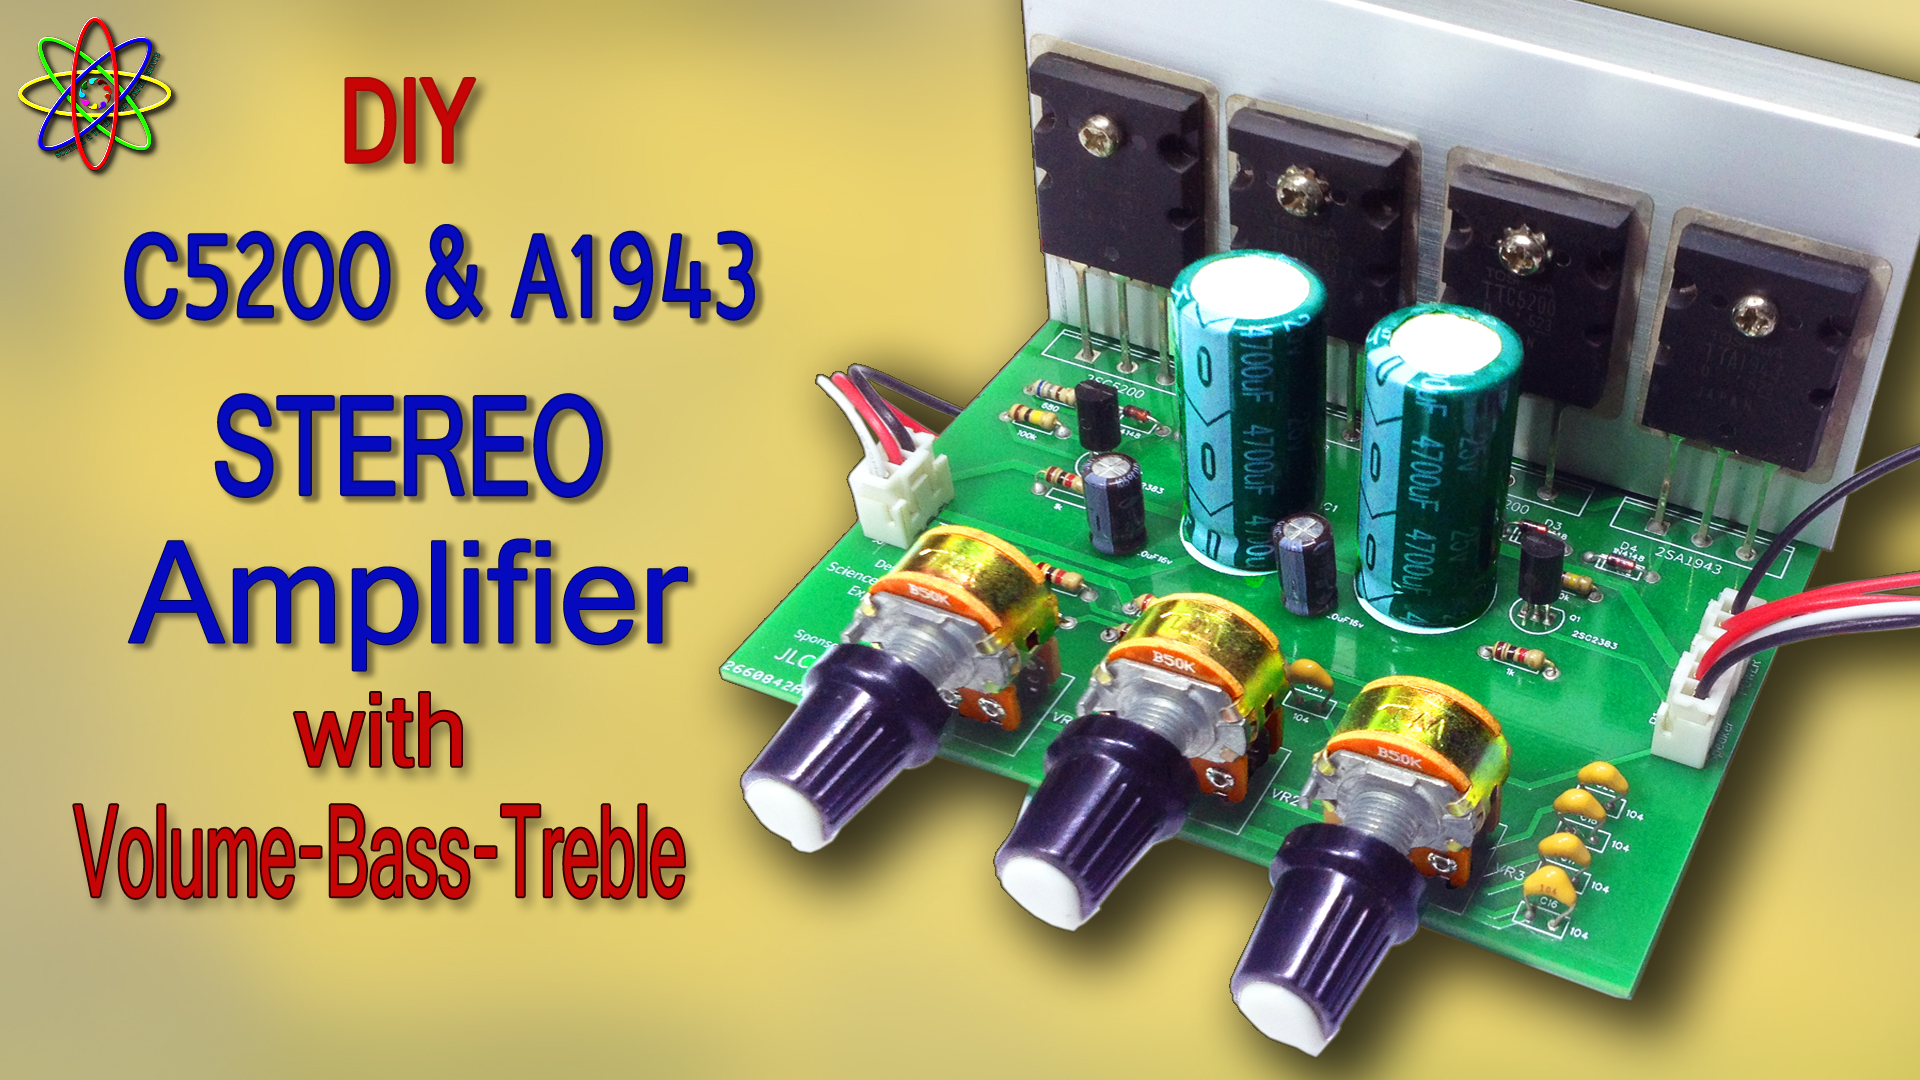 C5200 A1943 Stereo Amplifier DIY